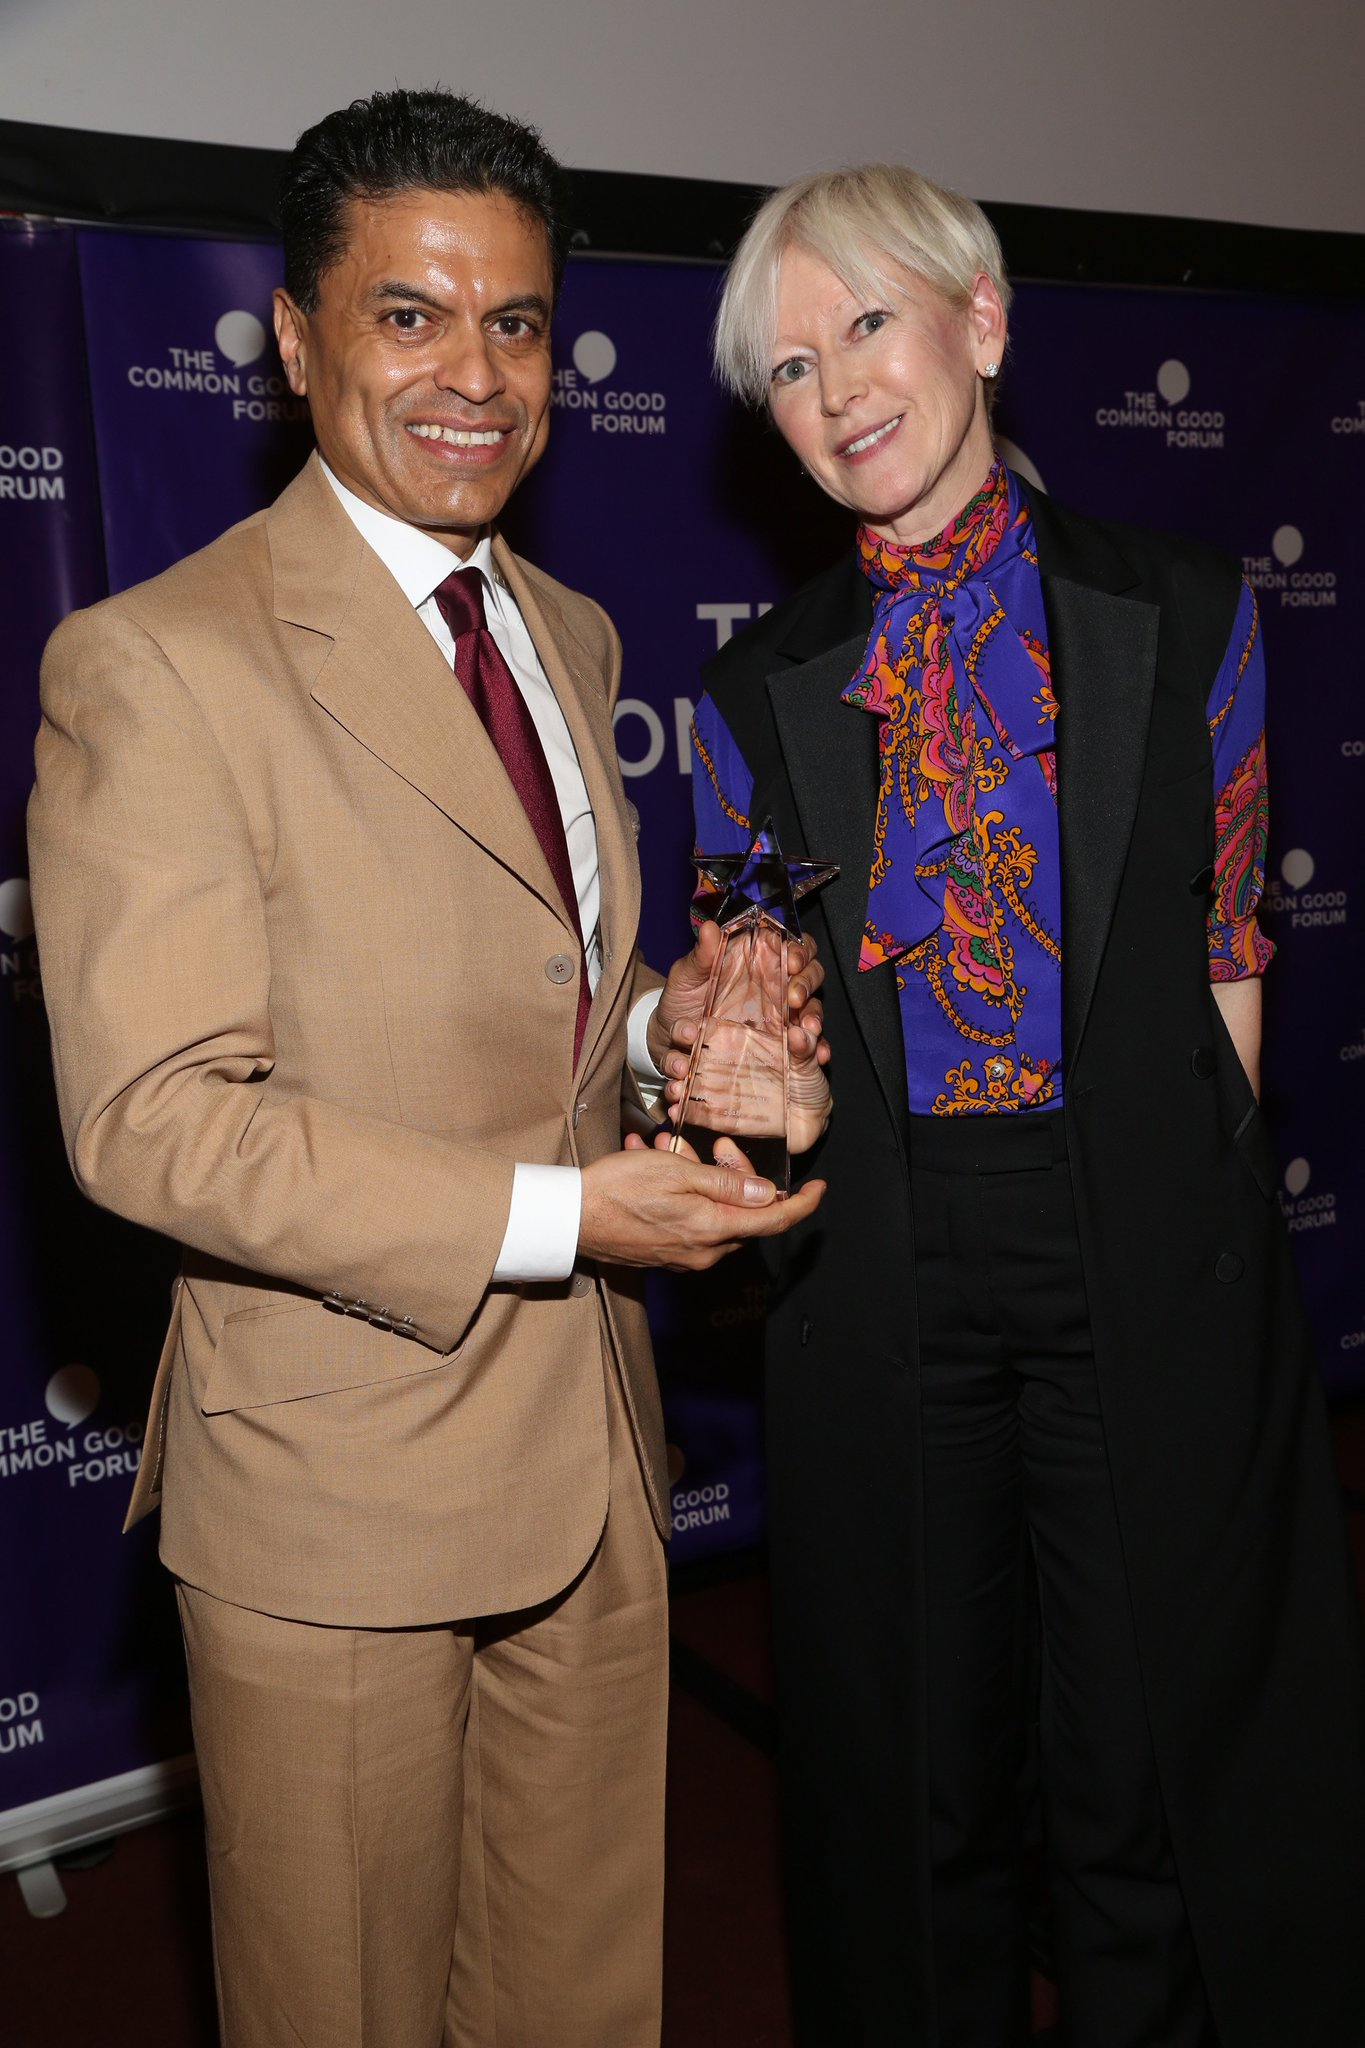 """It's so much fun to actually present an award where the candidate actually deserves it,"" @JoannaColes, Chief Content Officer for Hearst Magazines and friend for 20 years, said as she presented @FareedZakaria with the American Spirit Award for Thought Leadership. https://t.co/HmjXgBoV0V"